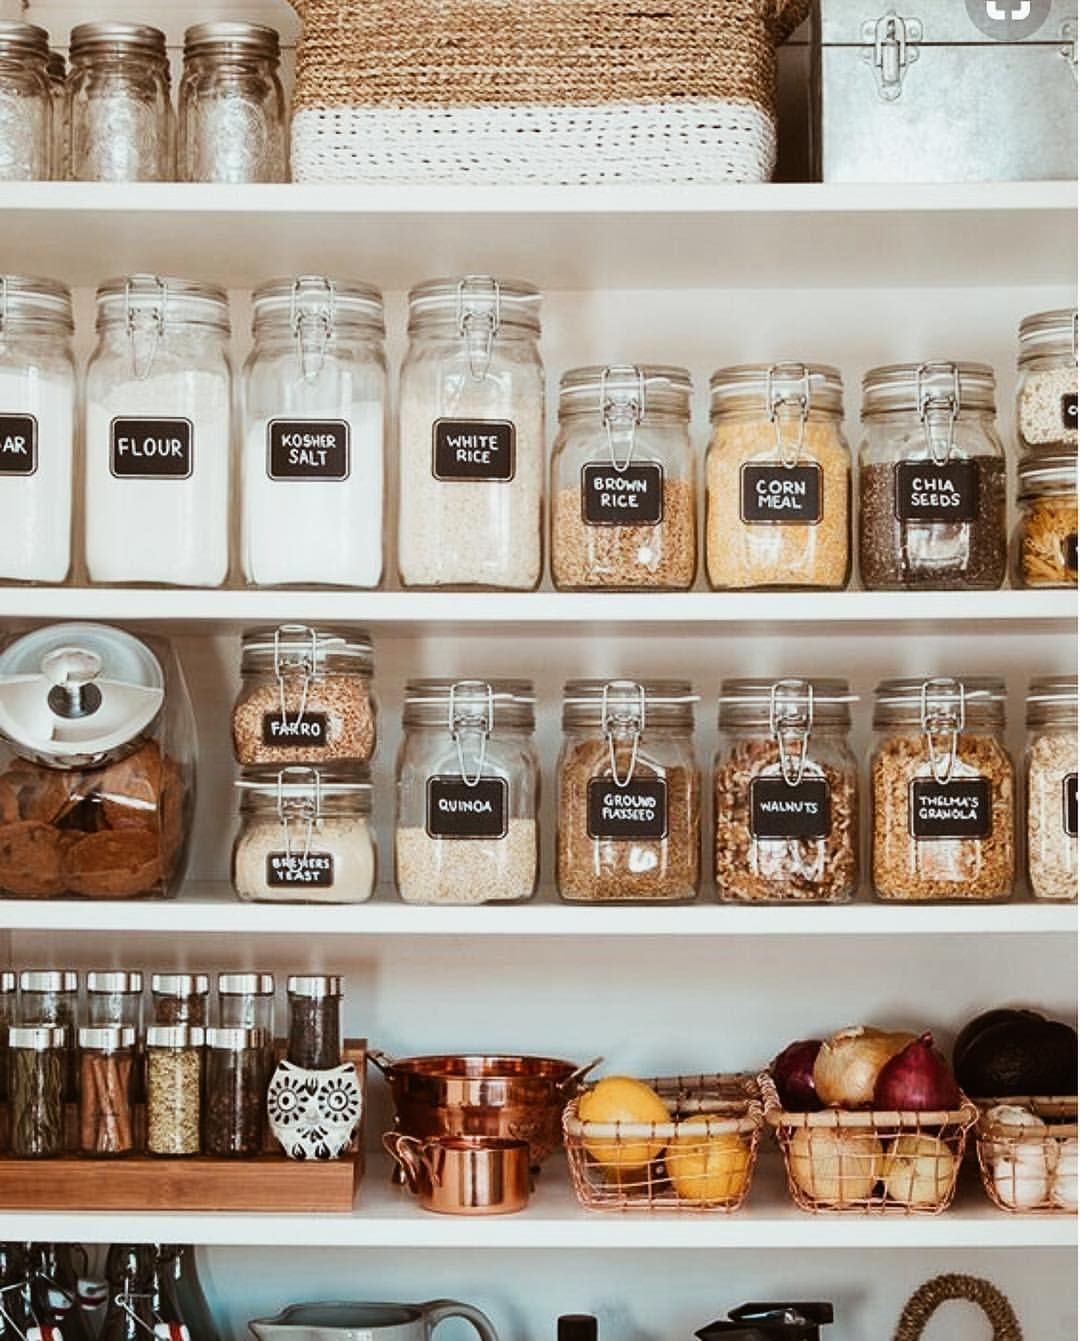 Kitchen organization done right ✨✔️ So simple, easy & affordable to do something like this...& it makes such a difference! Love this Jar pantry storage. Total kitchen Organization Goals.